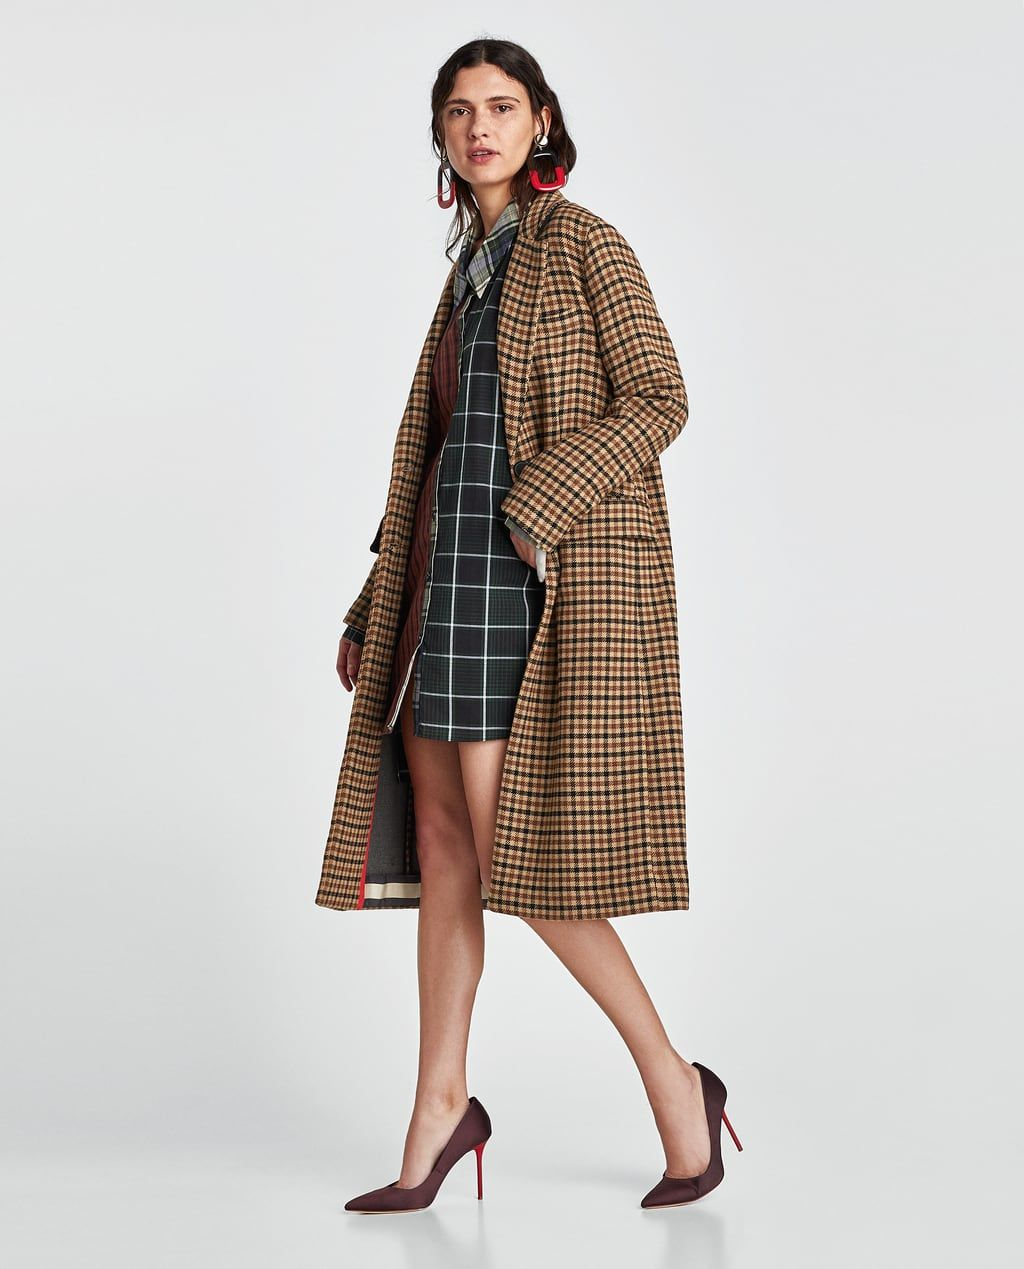 Discover ideas about Burberry Coat. A trench coat in English-woven Vintage  check cotton ... ce953ebcf39